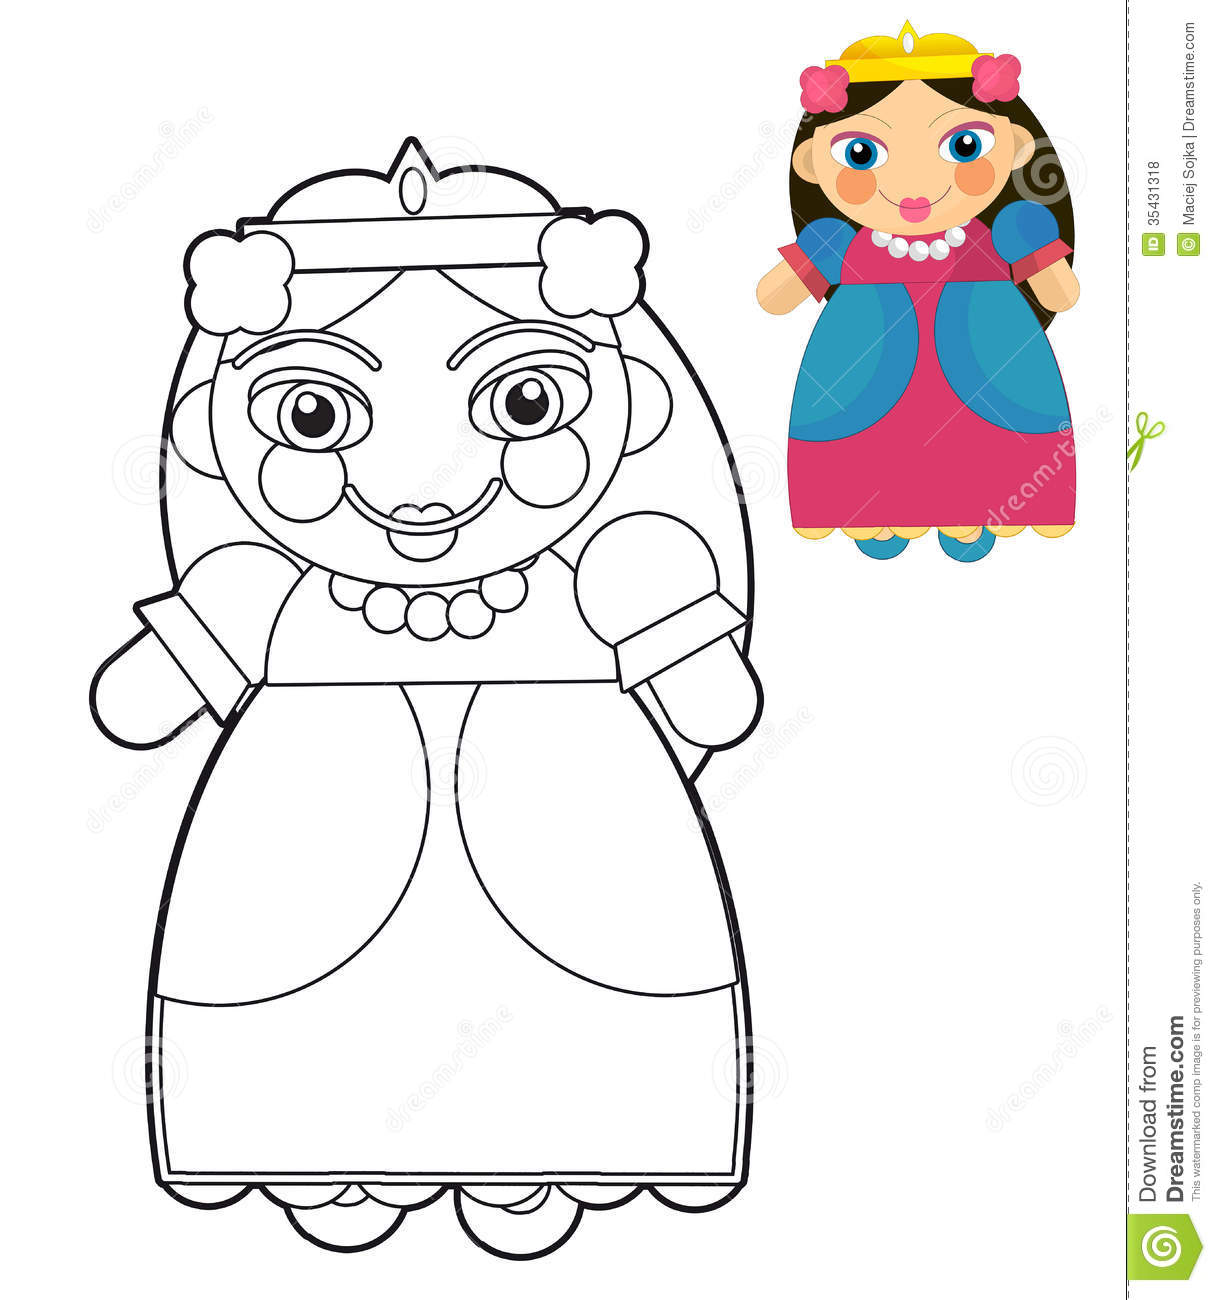 coloring images of doll alltoys for